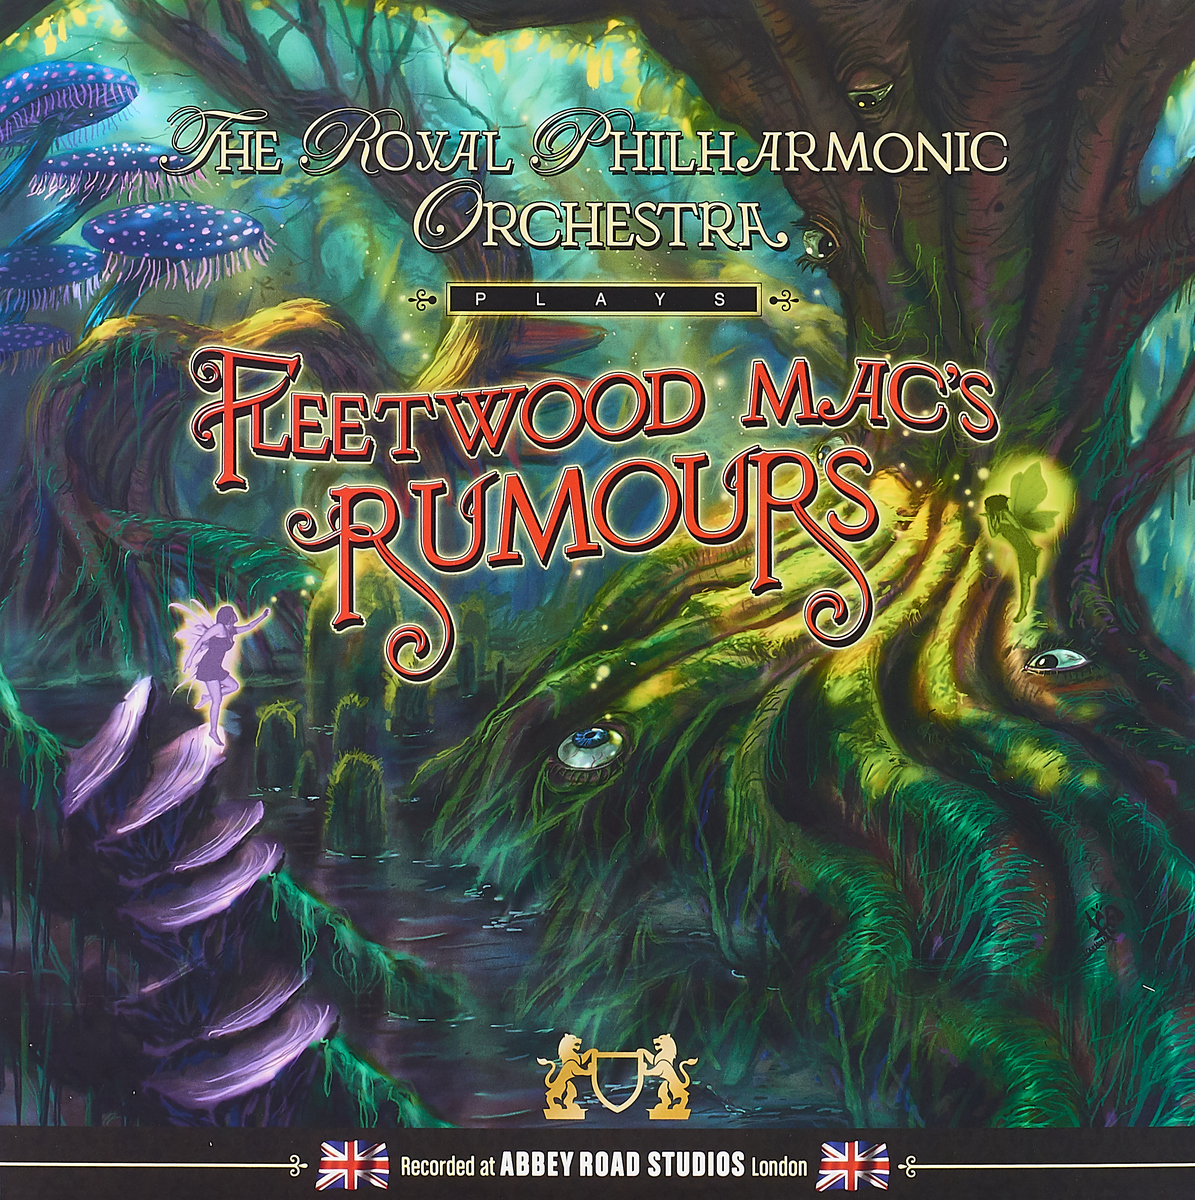 The Royal Philharmonic Orchestra The Royal Philharmonic Orchestra. Plays Fleetwood Mac's Rumours (LP) рени флеминг андреас делфс the royal philharmonic orchestra renee fleming saсred songs